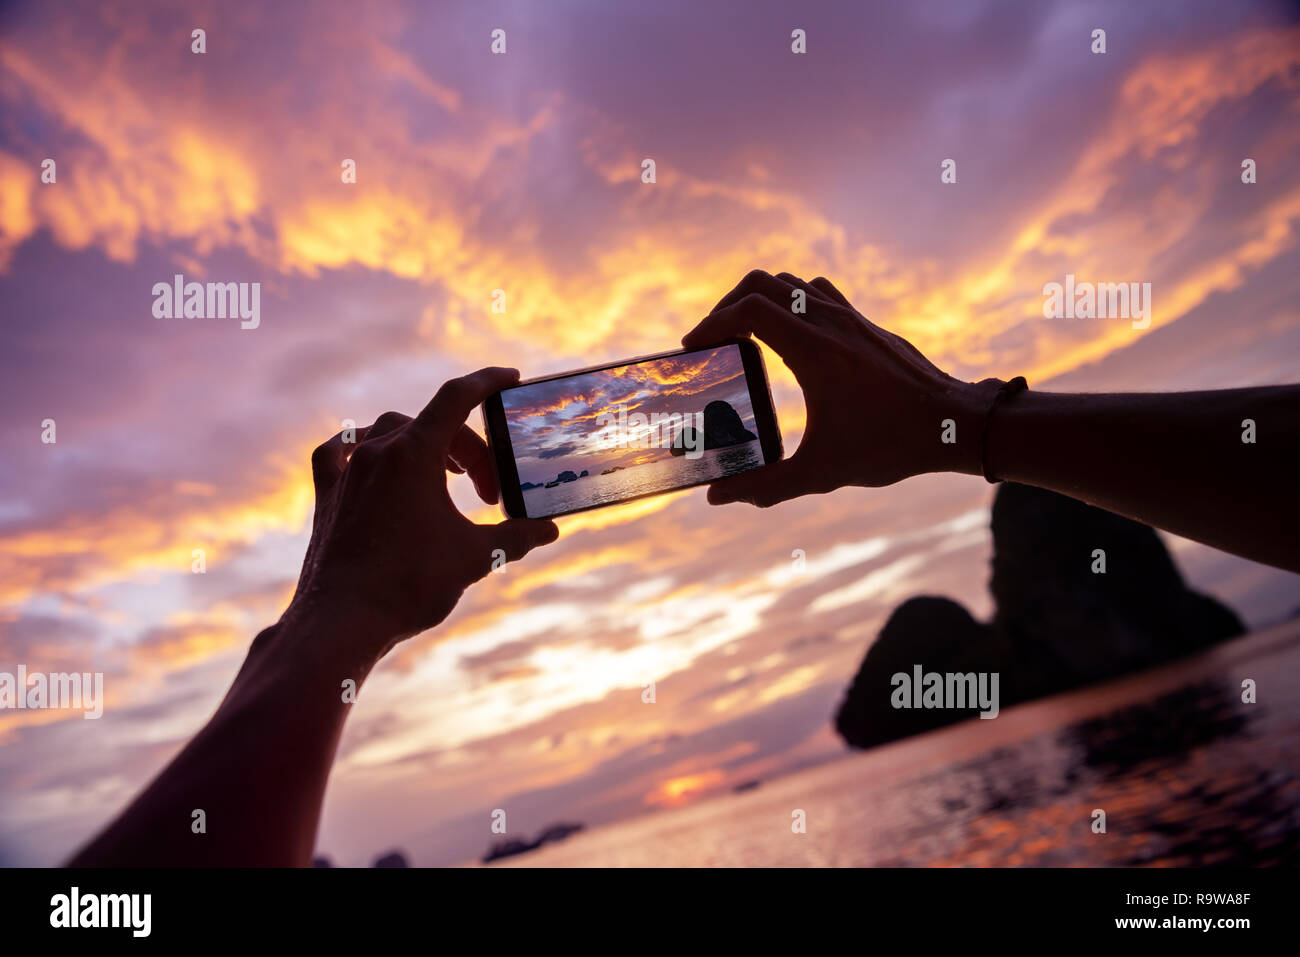 Closeup photo of hands taking a photo from mobile phone. Krabi province, Railay beach on background Stock Photo